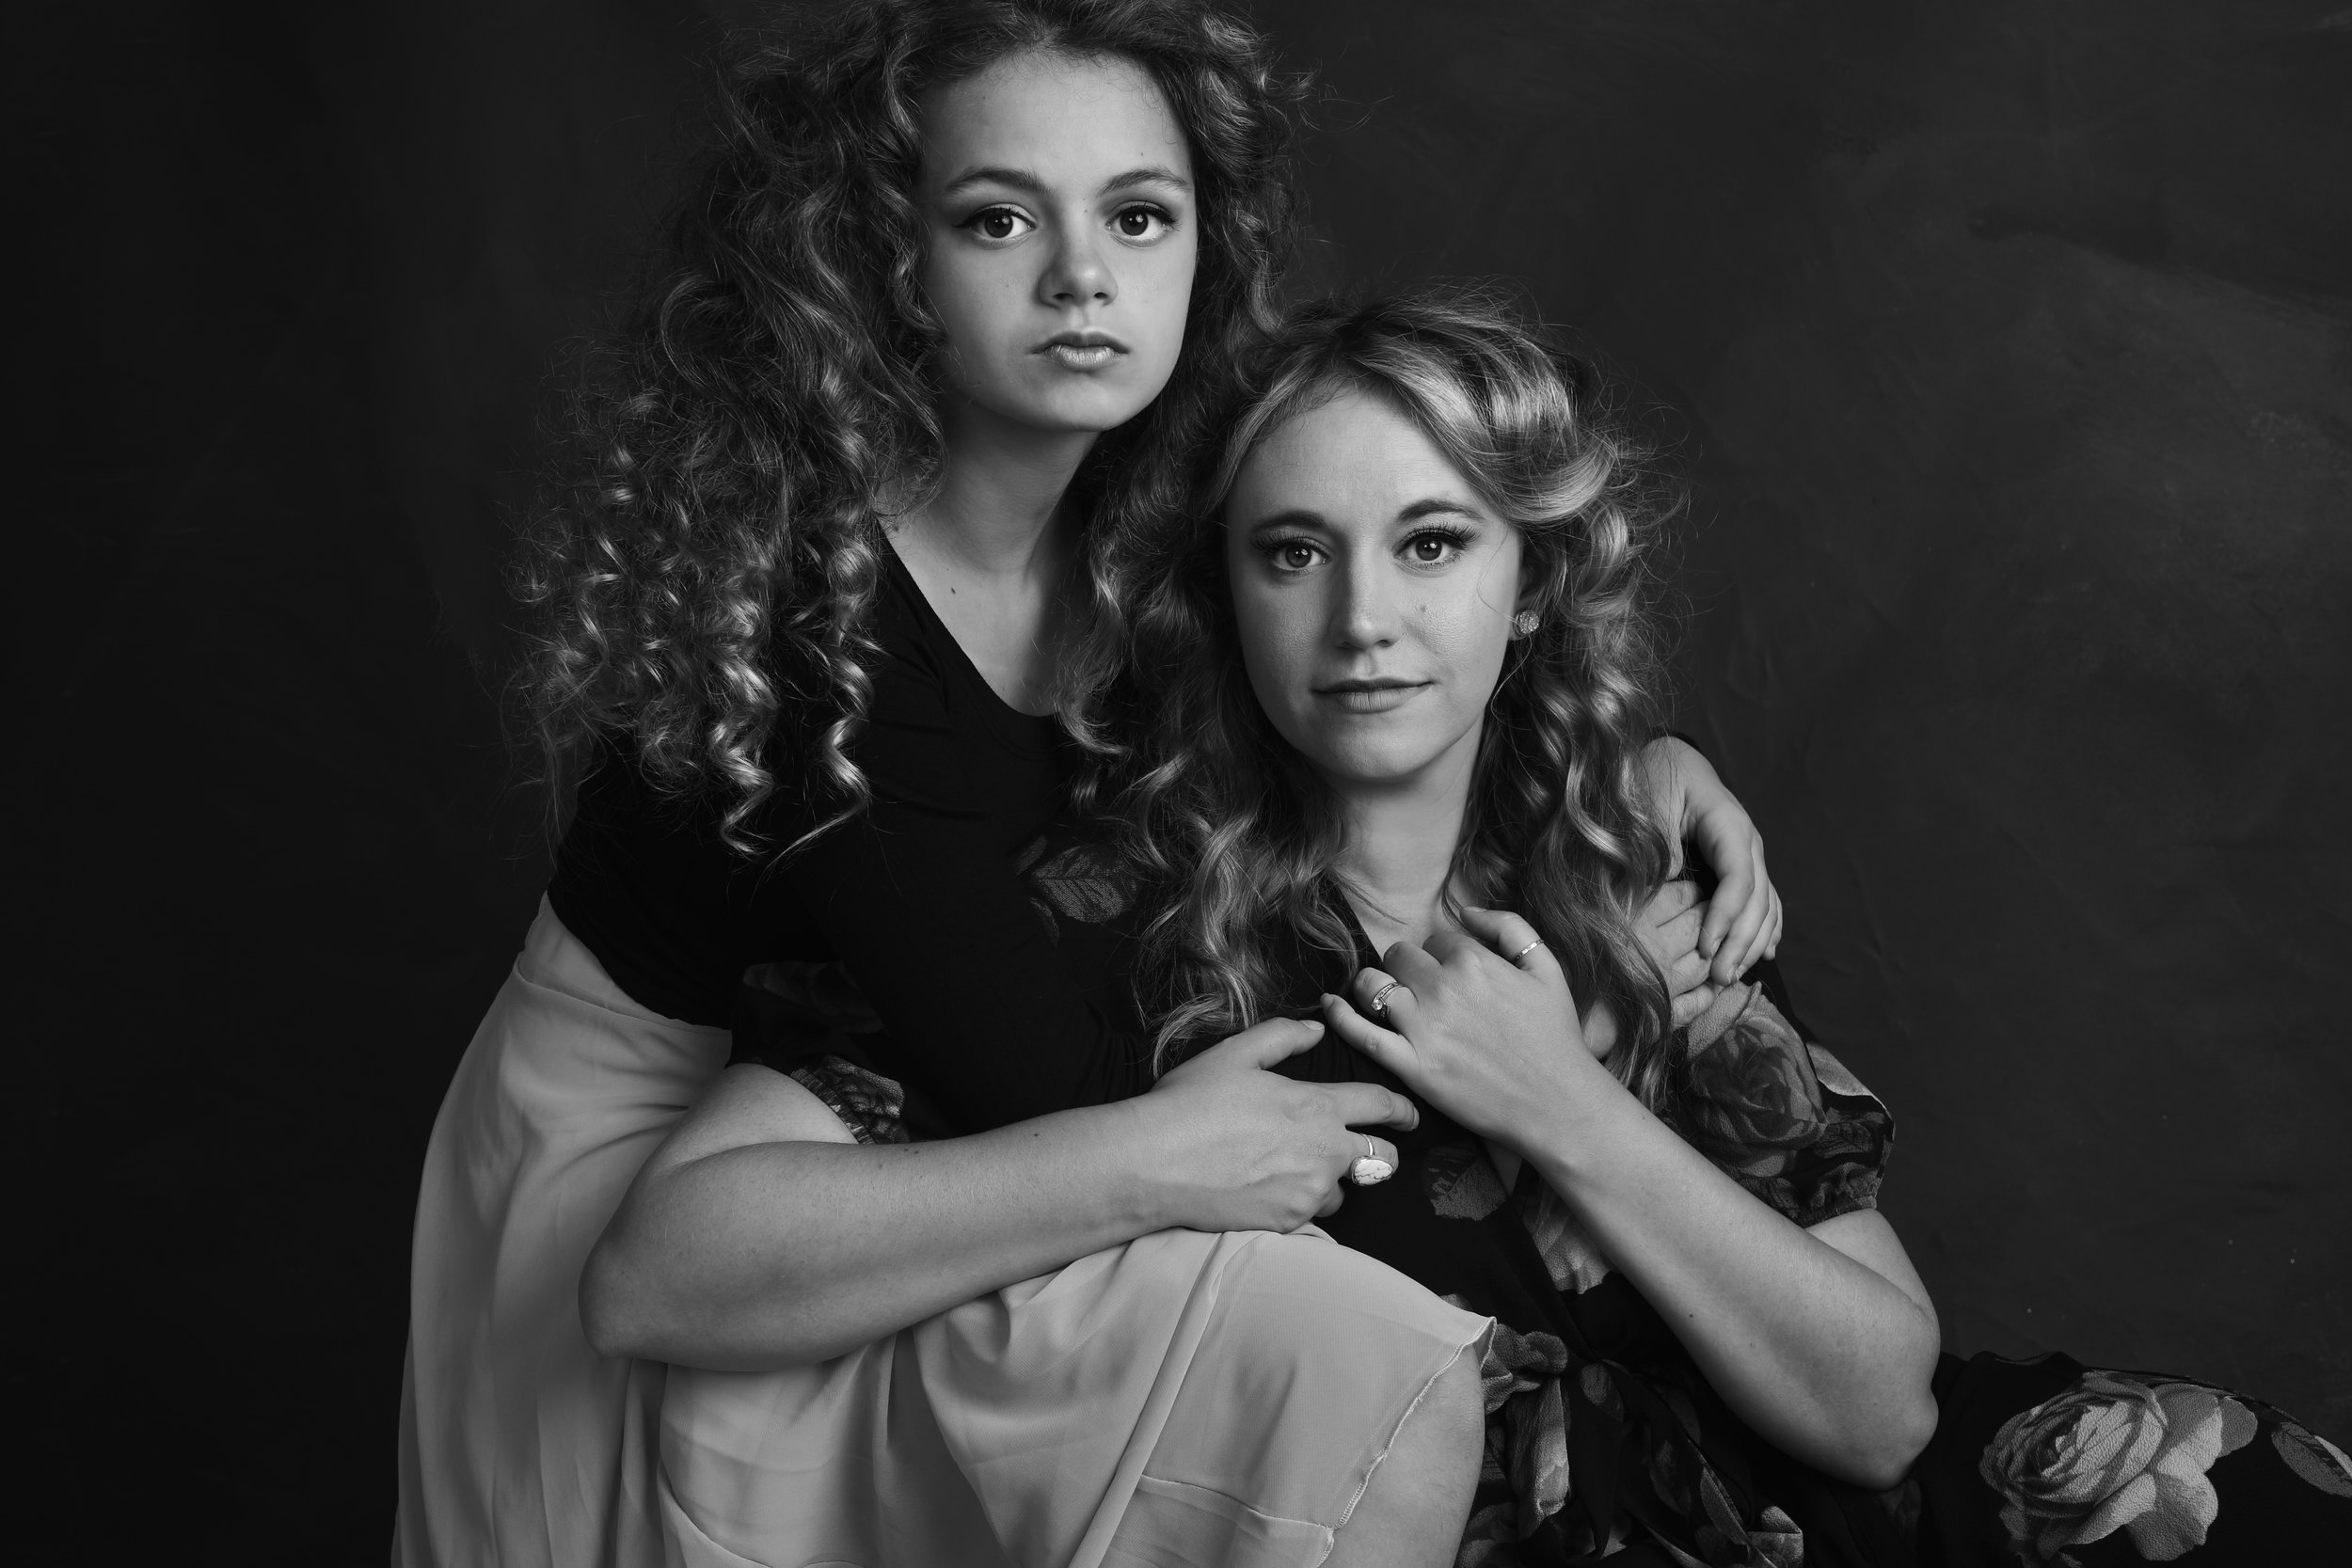 heirloom - mother daughter - win a portrait session - photo shoot